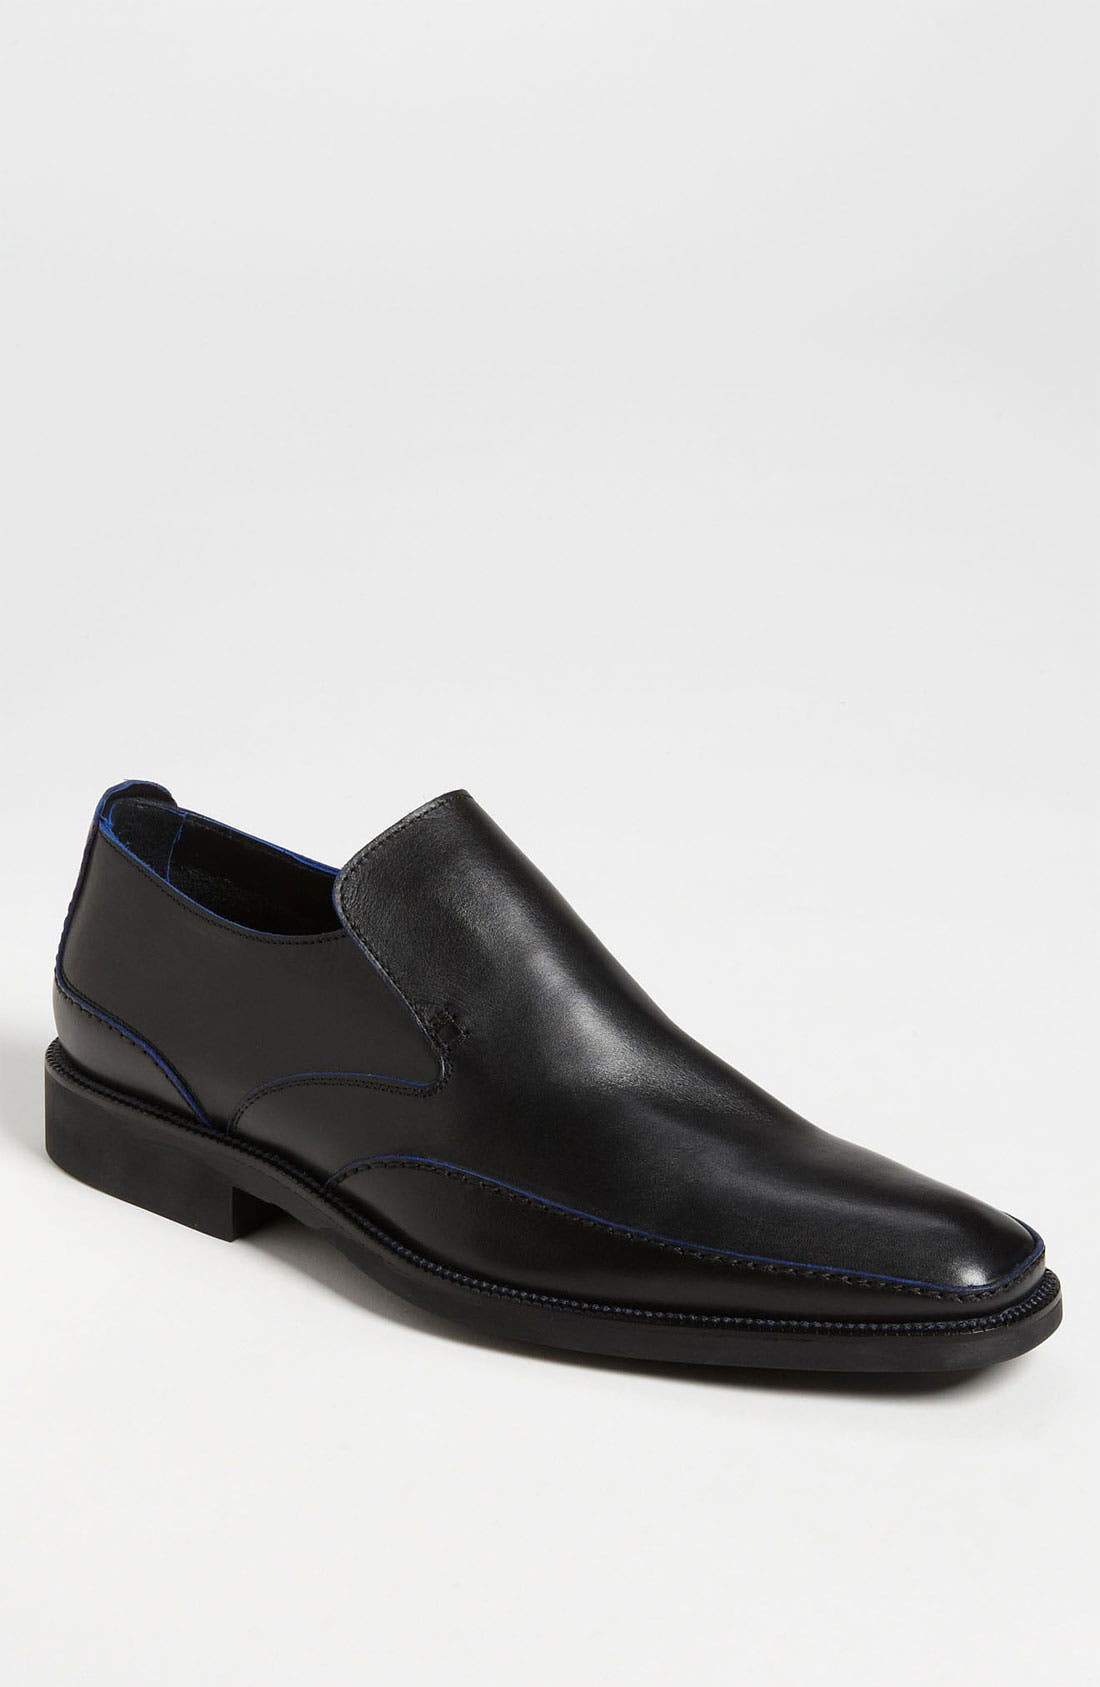 Alternate Image 1 Selected - Michael Toschi 'Caan' Venetian Loafer